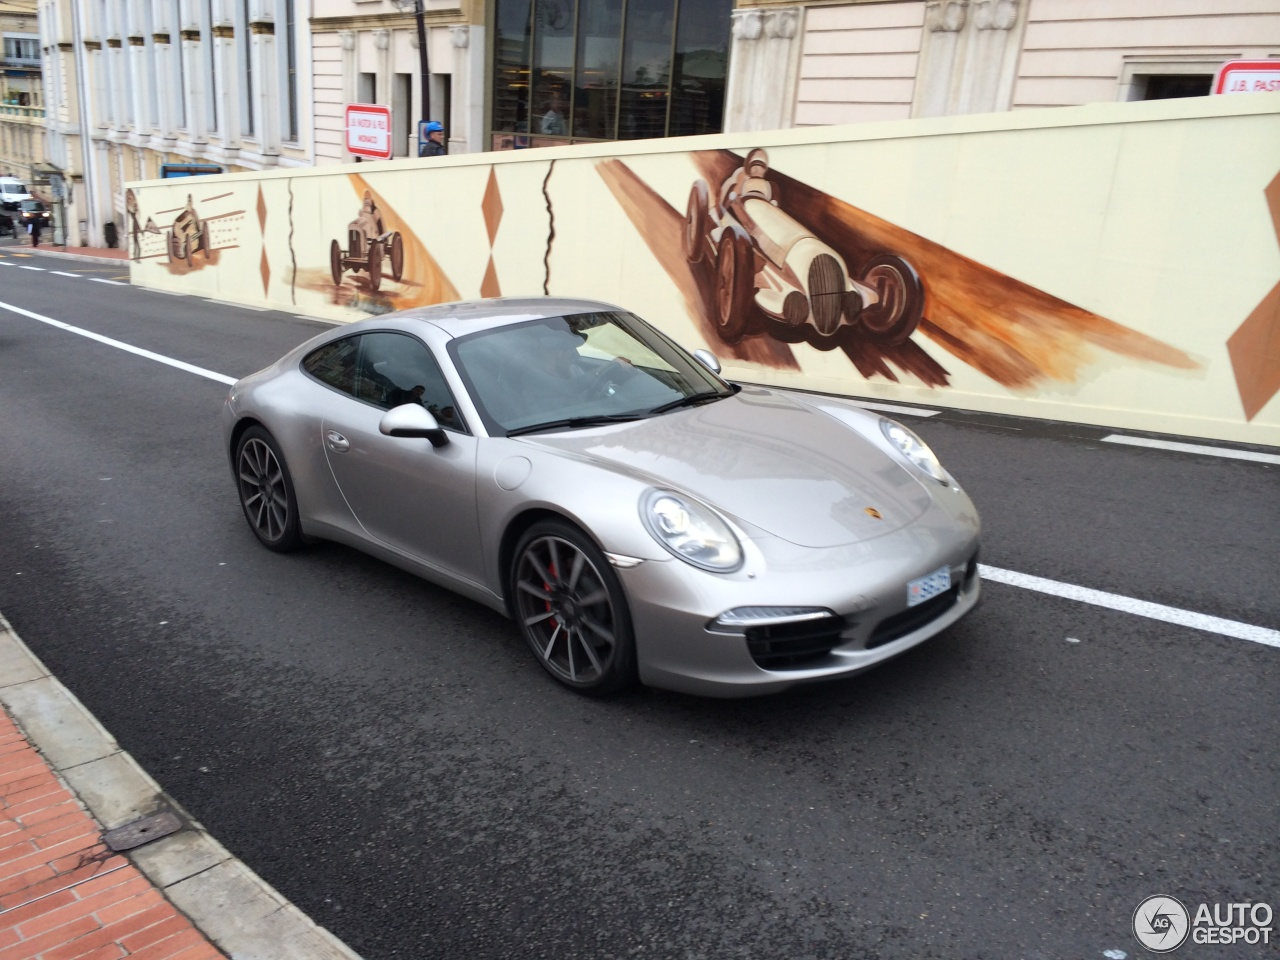 Porsche 991 Carrera S - 13 October 2014